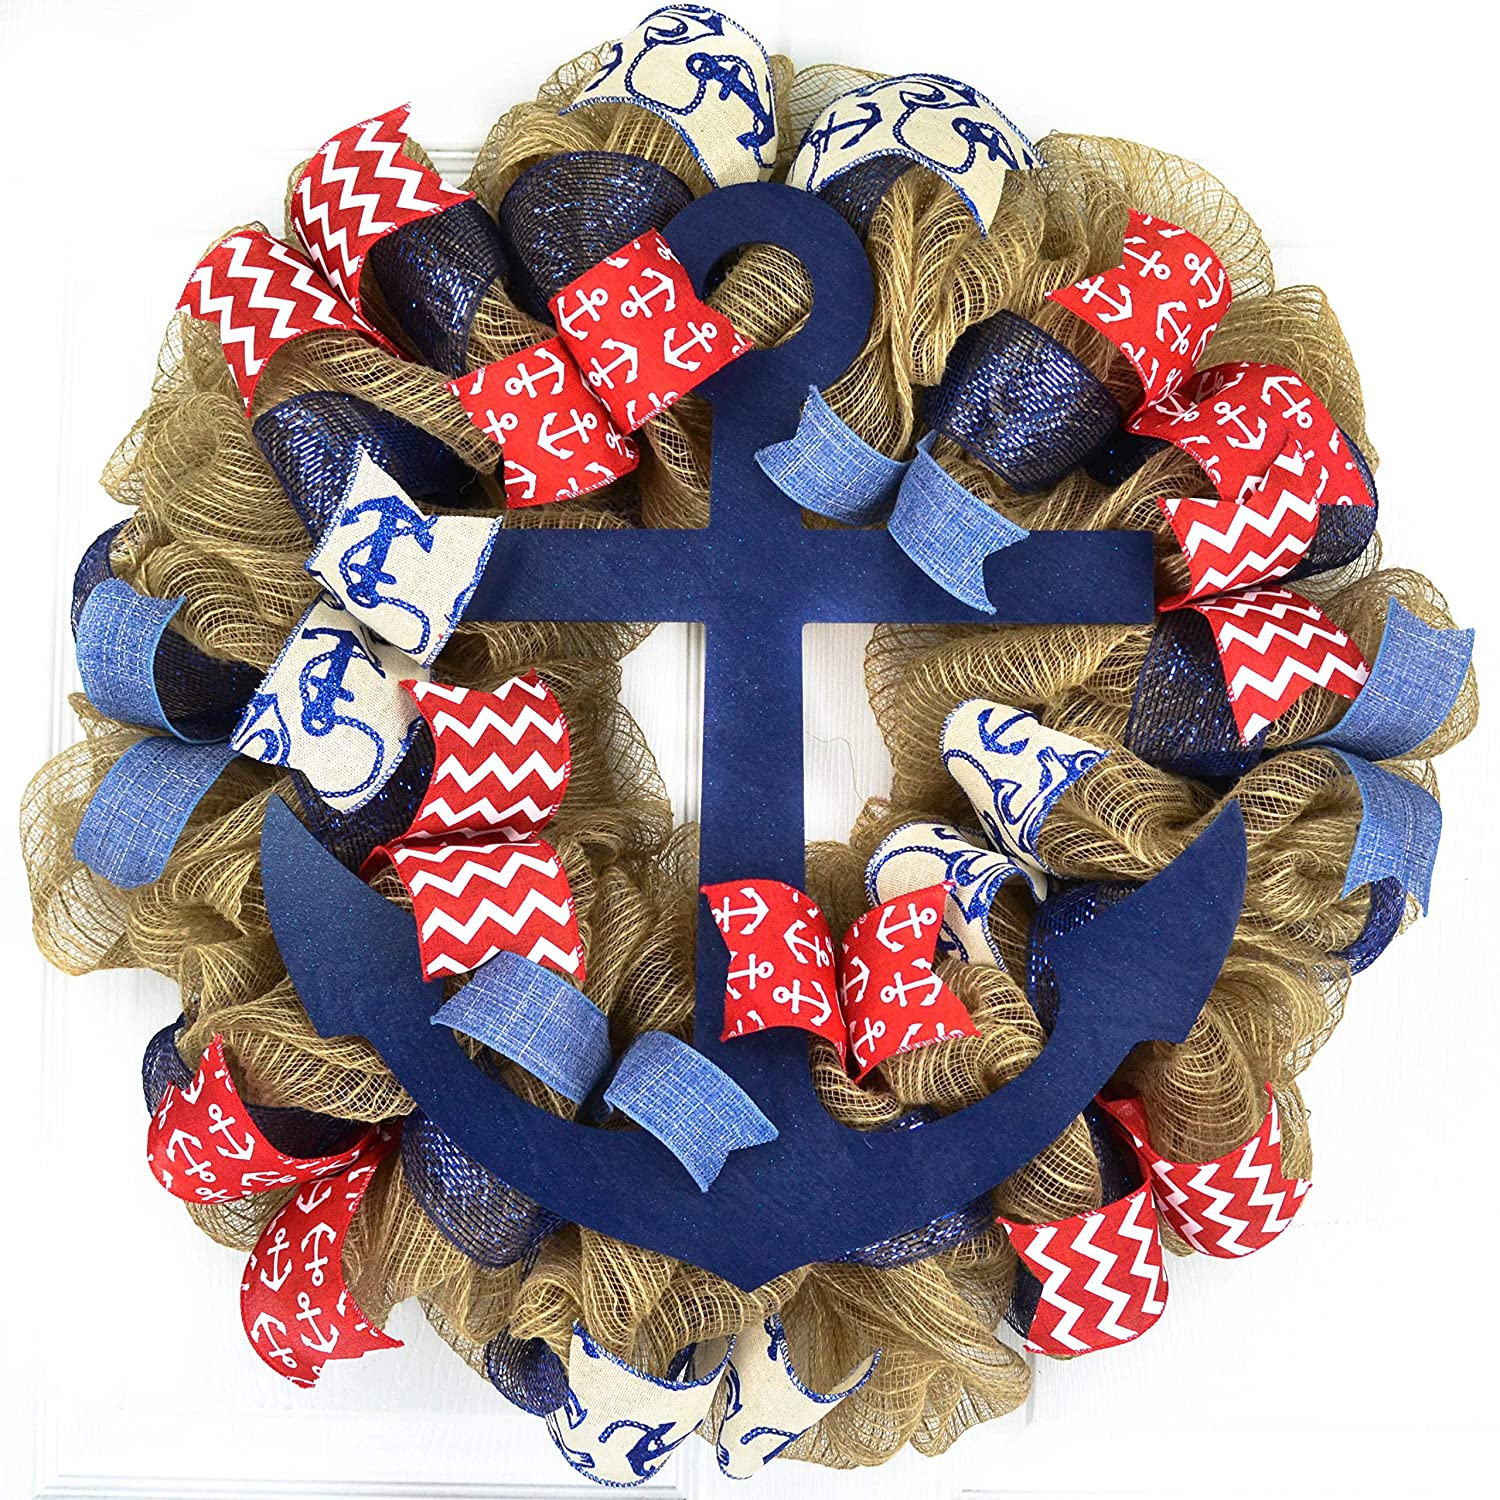 Anchor Wreath | Nautical Decor | Jute Burlap Front Door Wreath | Navy Blue Red White